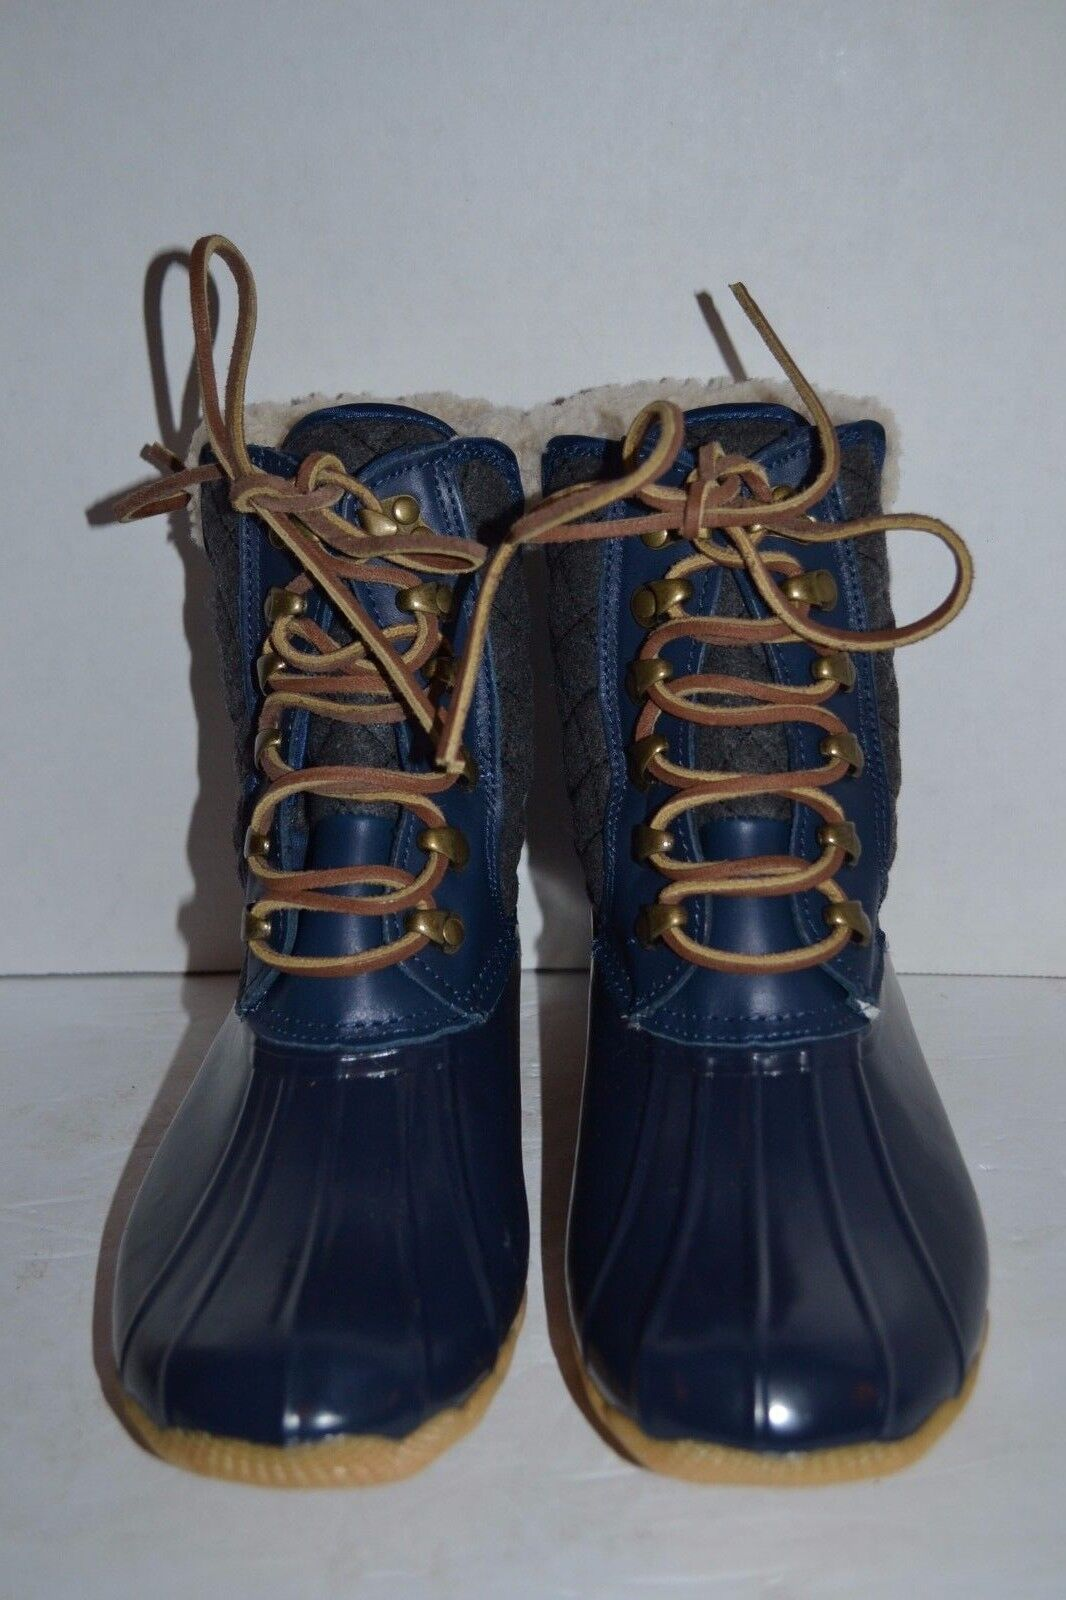 Sperry FOR J CREW Wool Lined SHEARWATER NAVY/CHARCOAL DUCK RUBBER BOOT SNOW RUBBER DUCK 8 M 3e0f5a